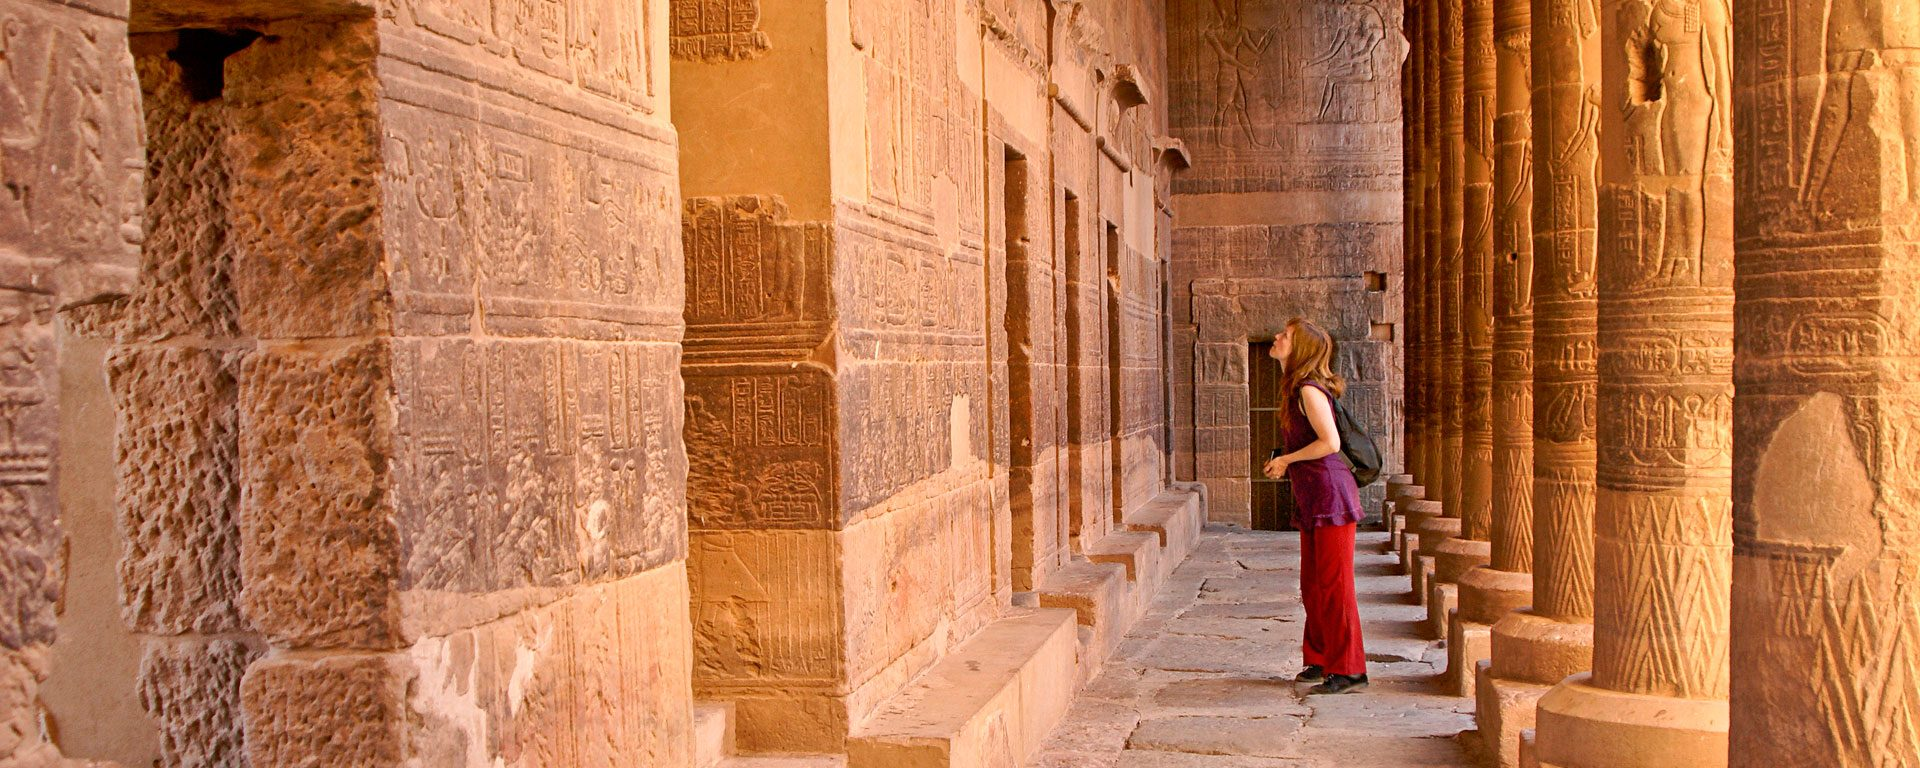 Female traveler in colonnade at Philae Temple, Aswan, Egypt